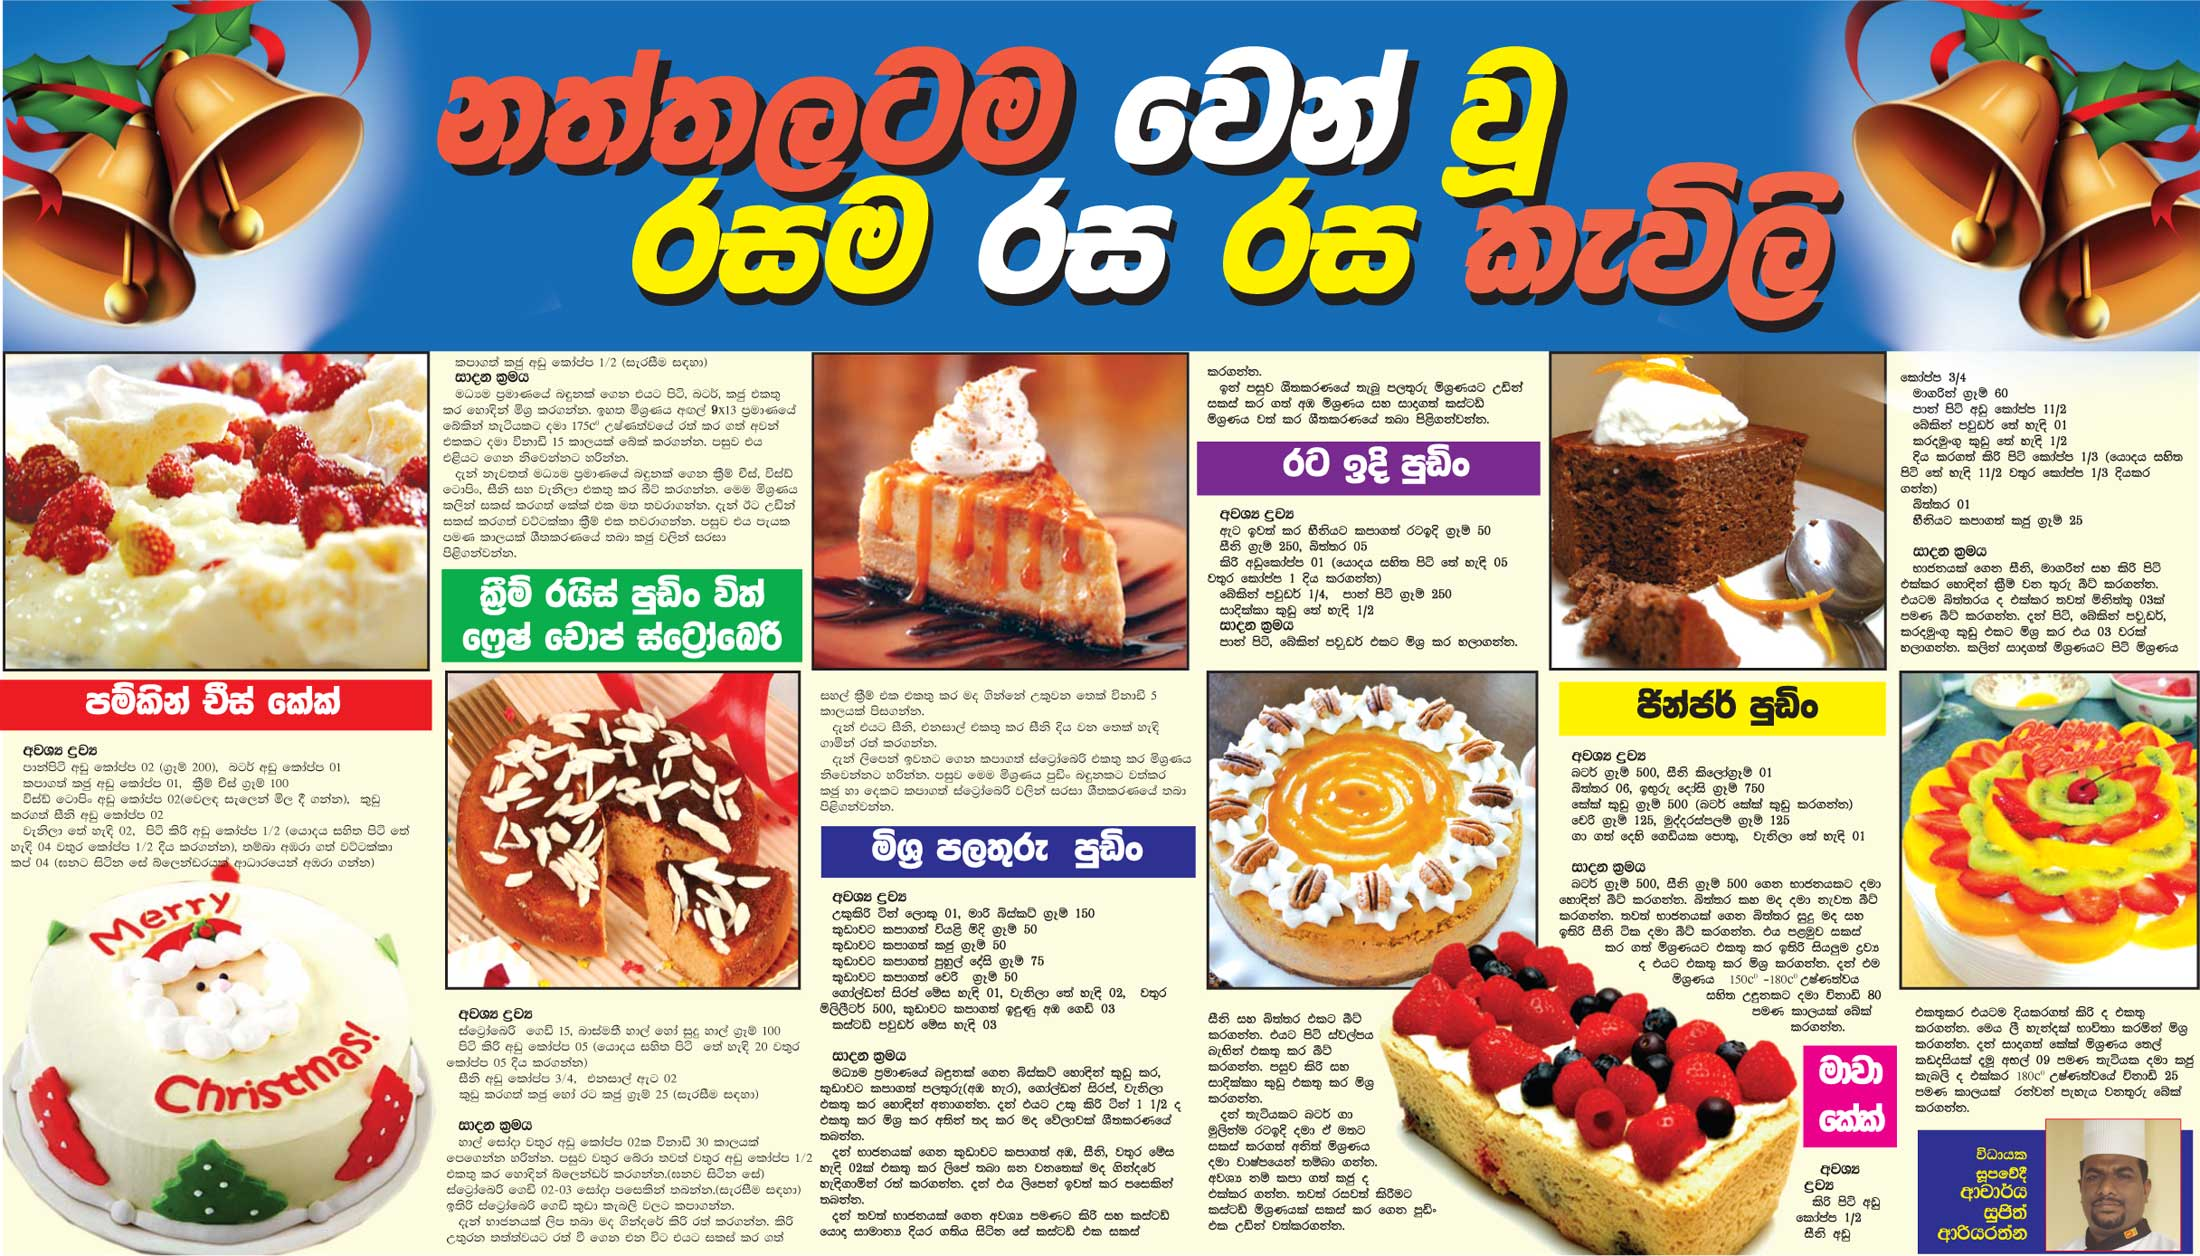 Cakes recipes cake recipes sinhala pictures of cake recipes sinhala forumfinder Choice Image